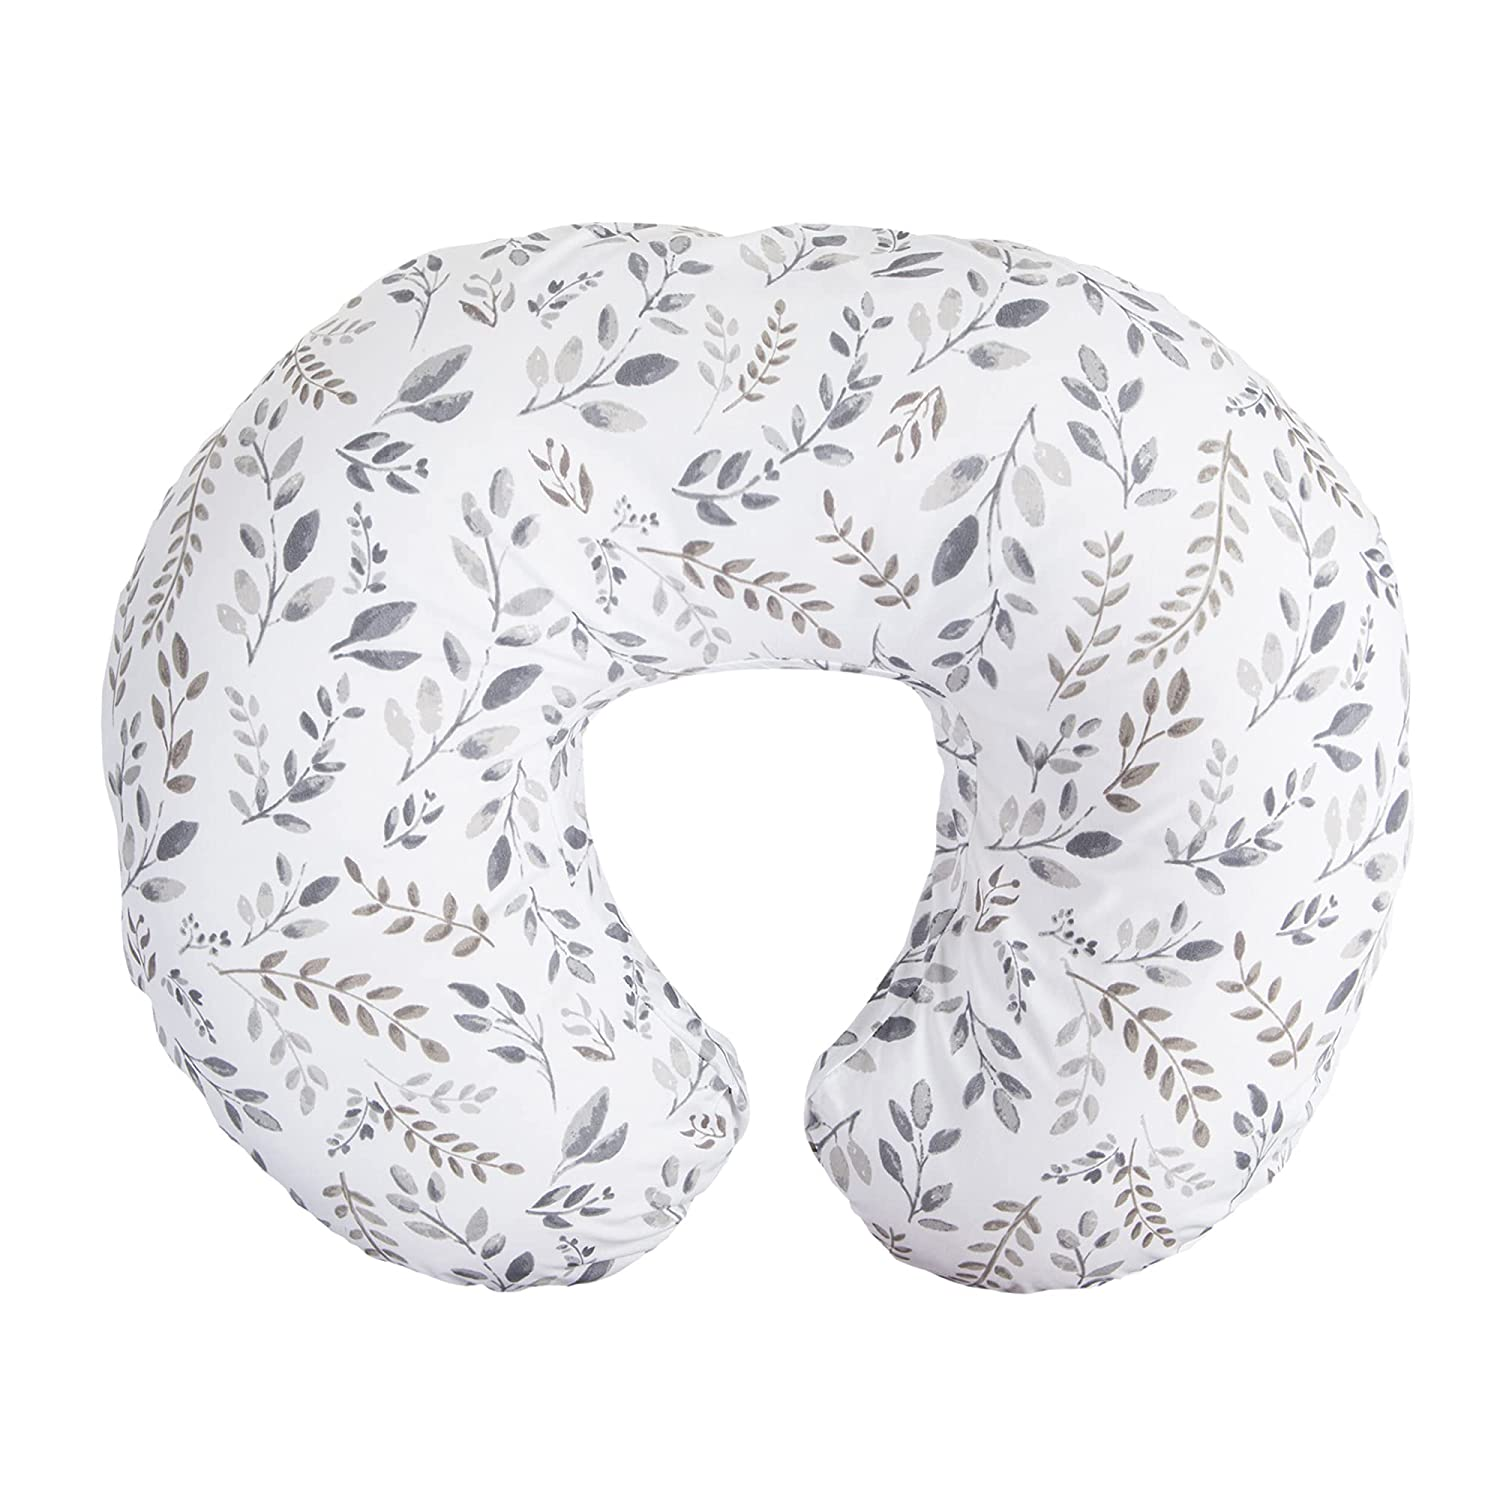 Boppy Nursing Pillow and Positioner—Original | Gray Taupe Watercolor Leaves | Breastfeeding, Bottle Feeding, Baby Support | with Removable Cotton Blend Cover | Awake-Time Support